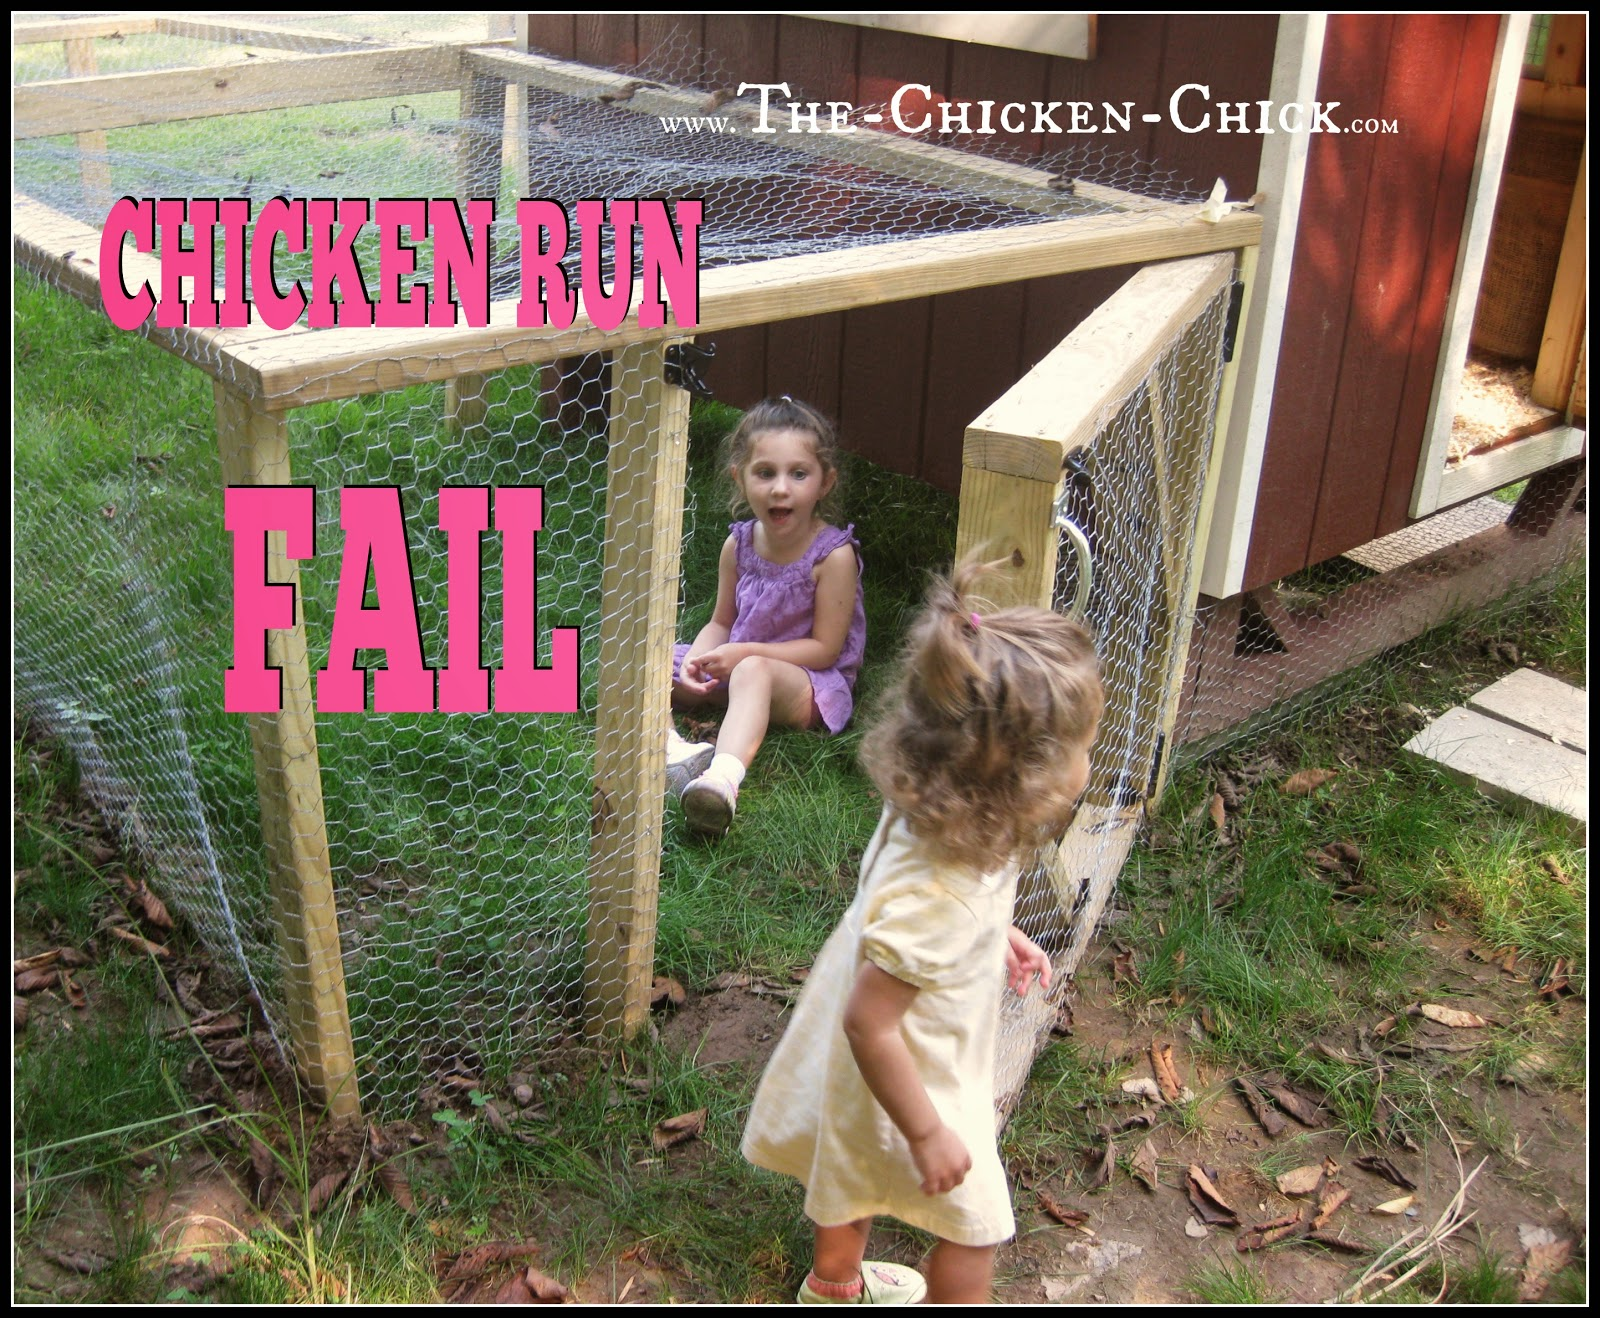 Make the door into the chicken run tall enough for people to enter without causing head injuries.